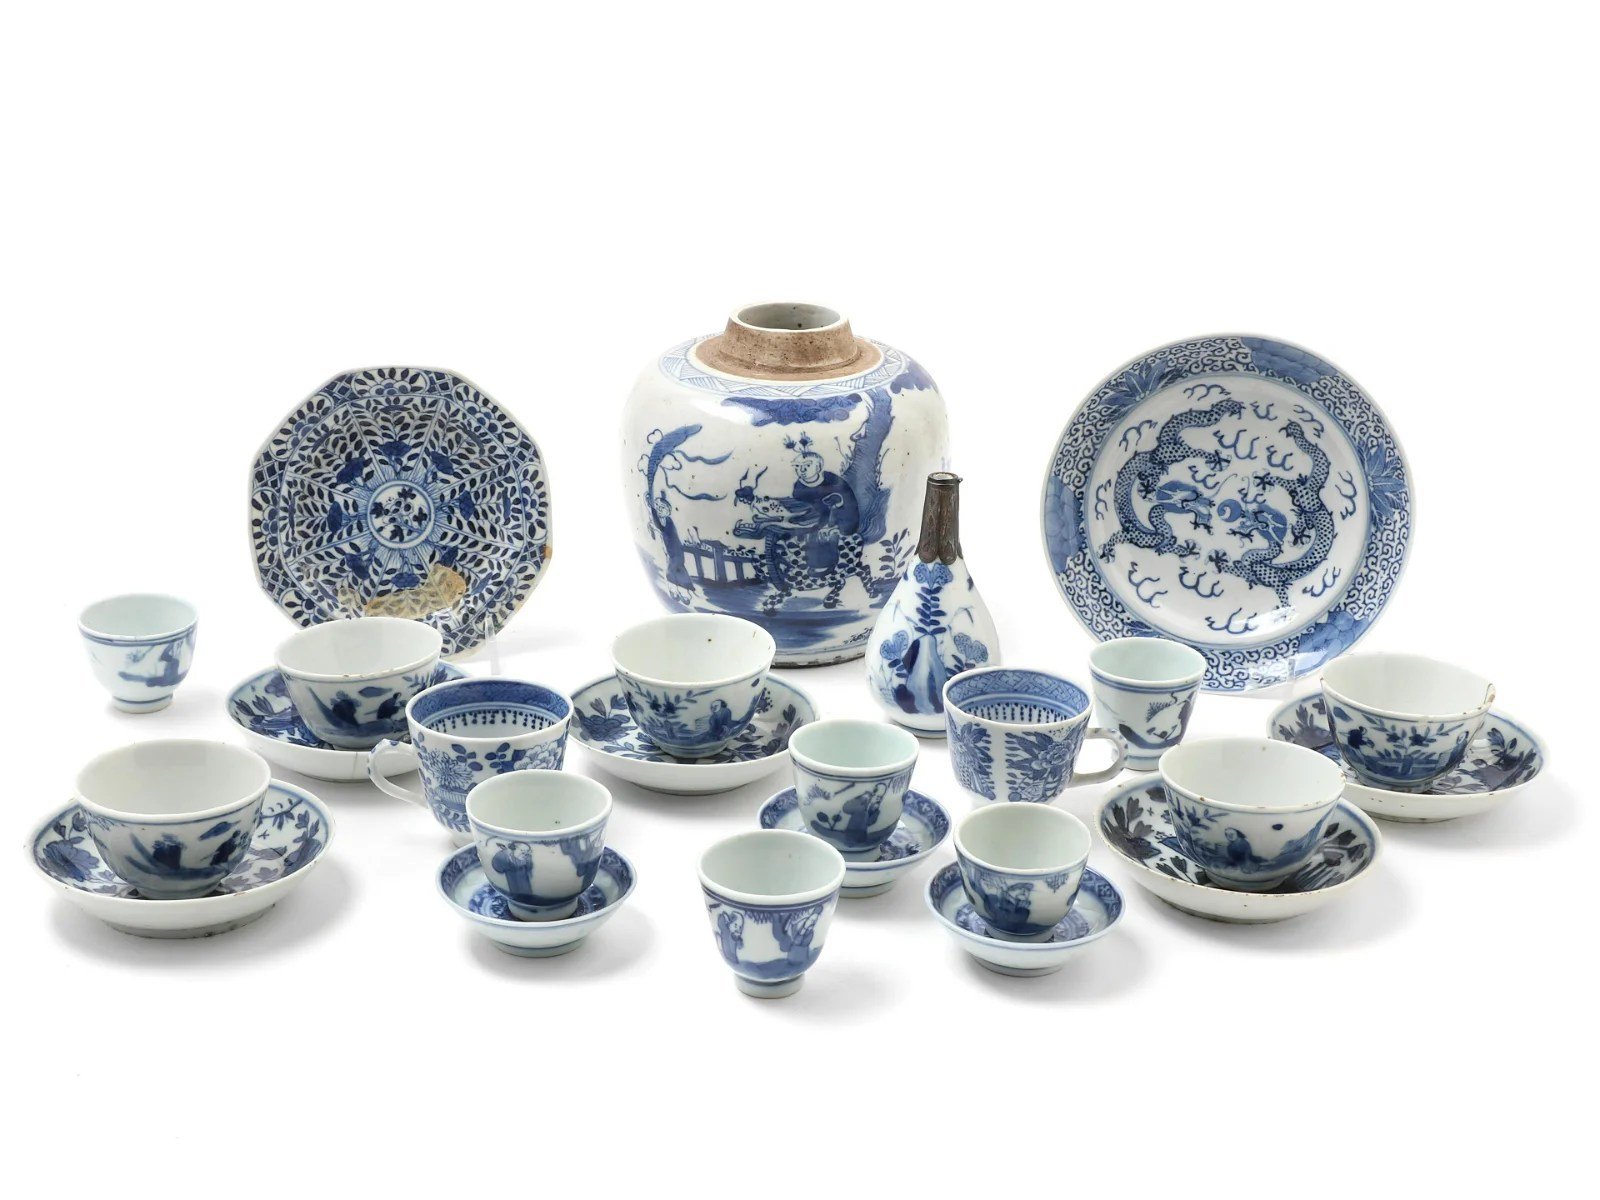 Twenty-Five Chinese Blue and White Porcelain Articles